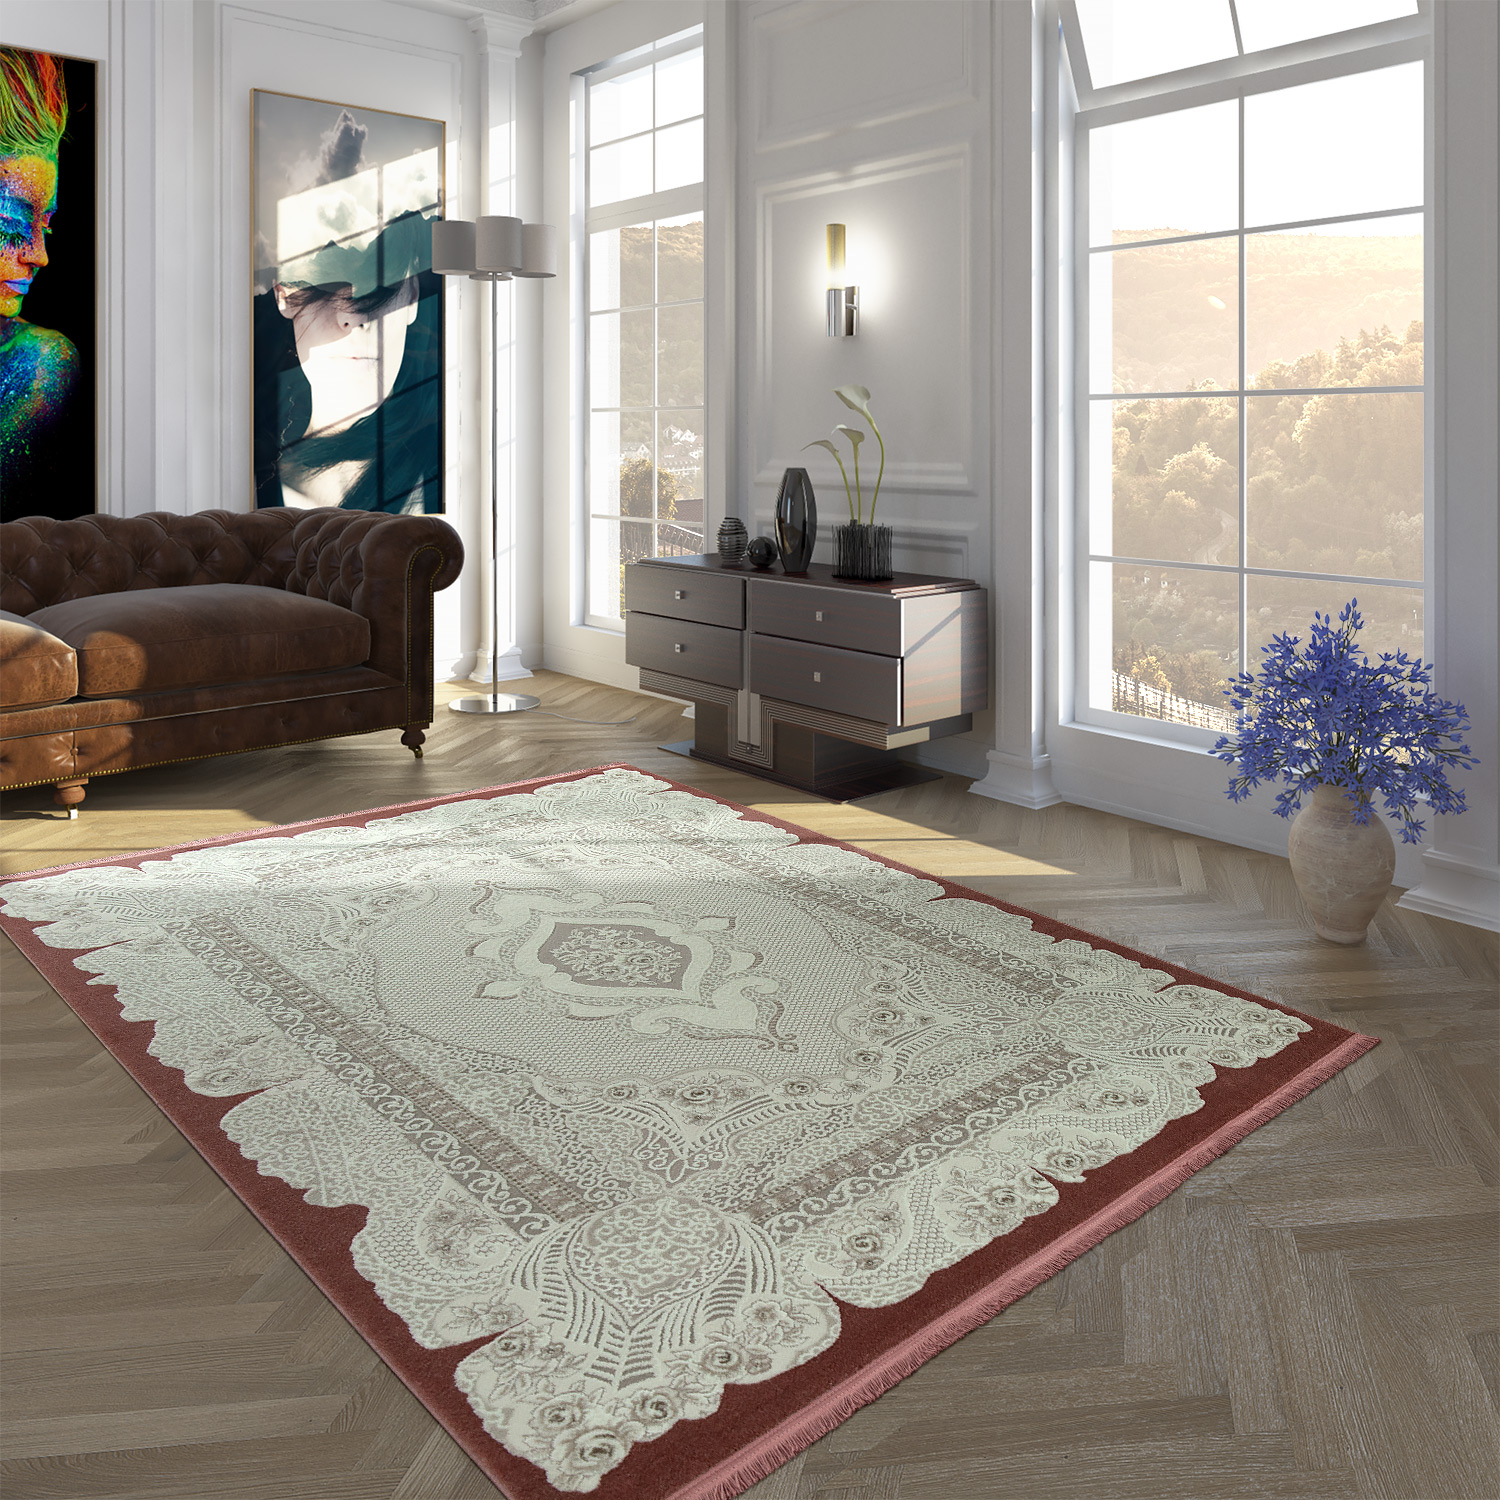 Polyacrylic Rug Short Pile High-Quality Vintage Look Orient Look Fringes Green White